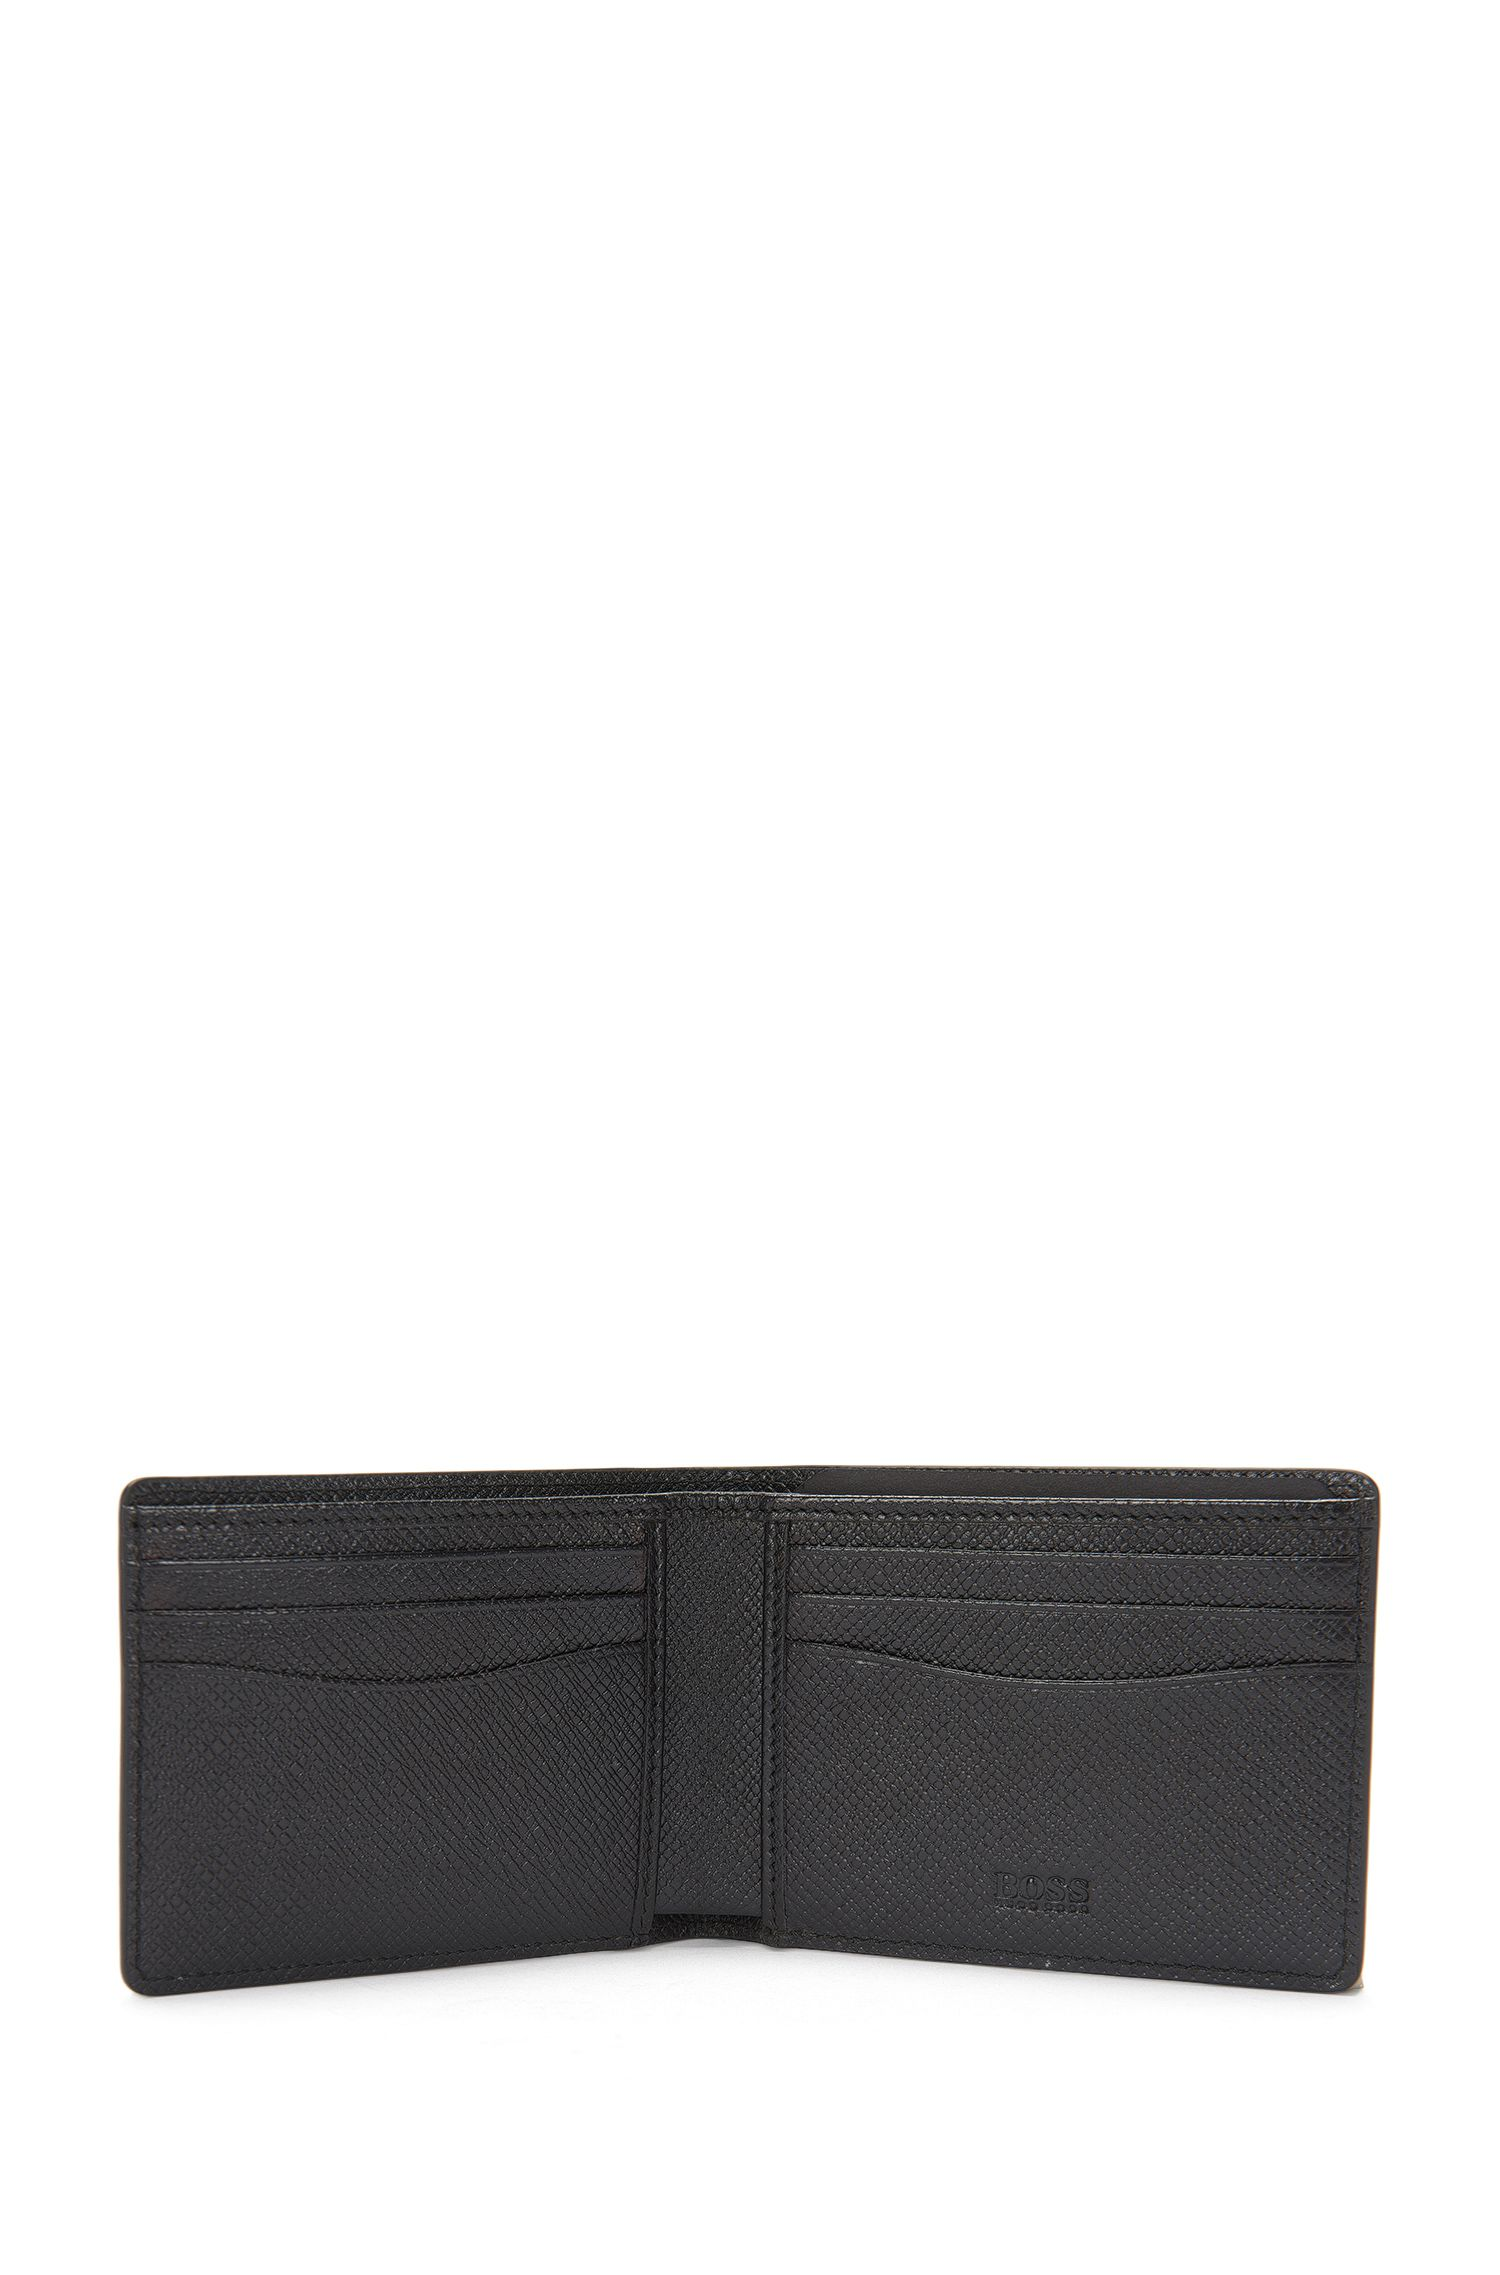 'Signature H CC' | Calfskin Textured Printed Wallet, Patterned